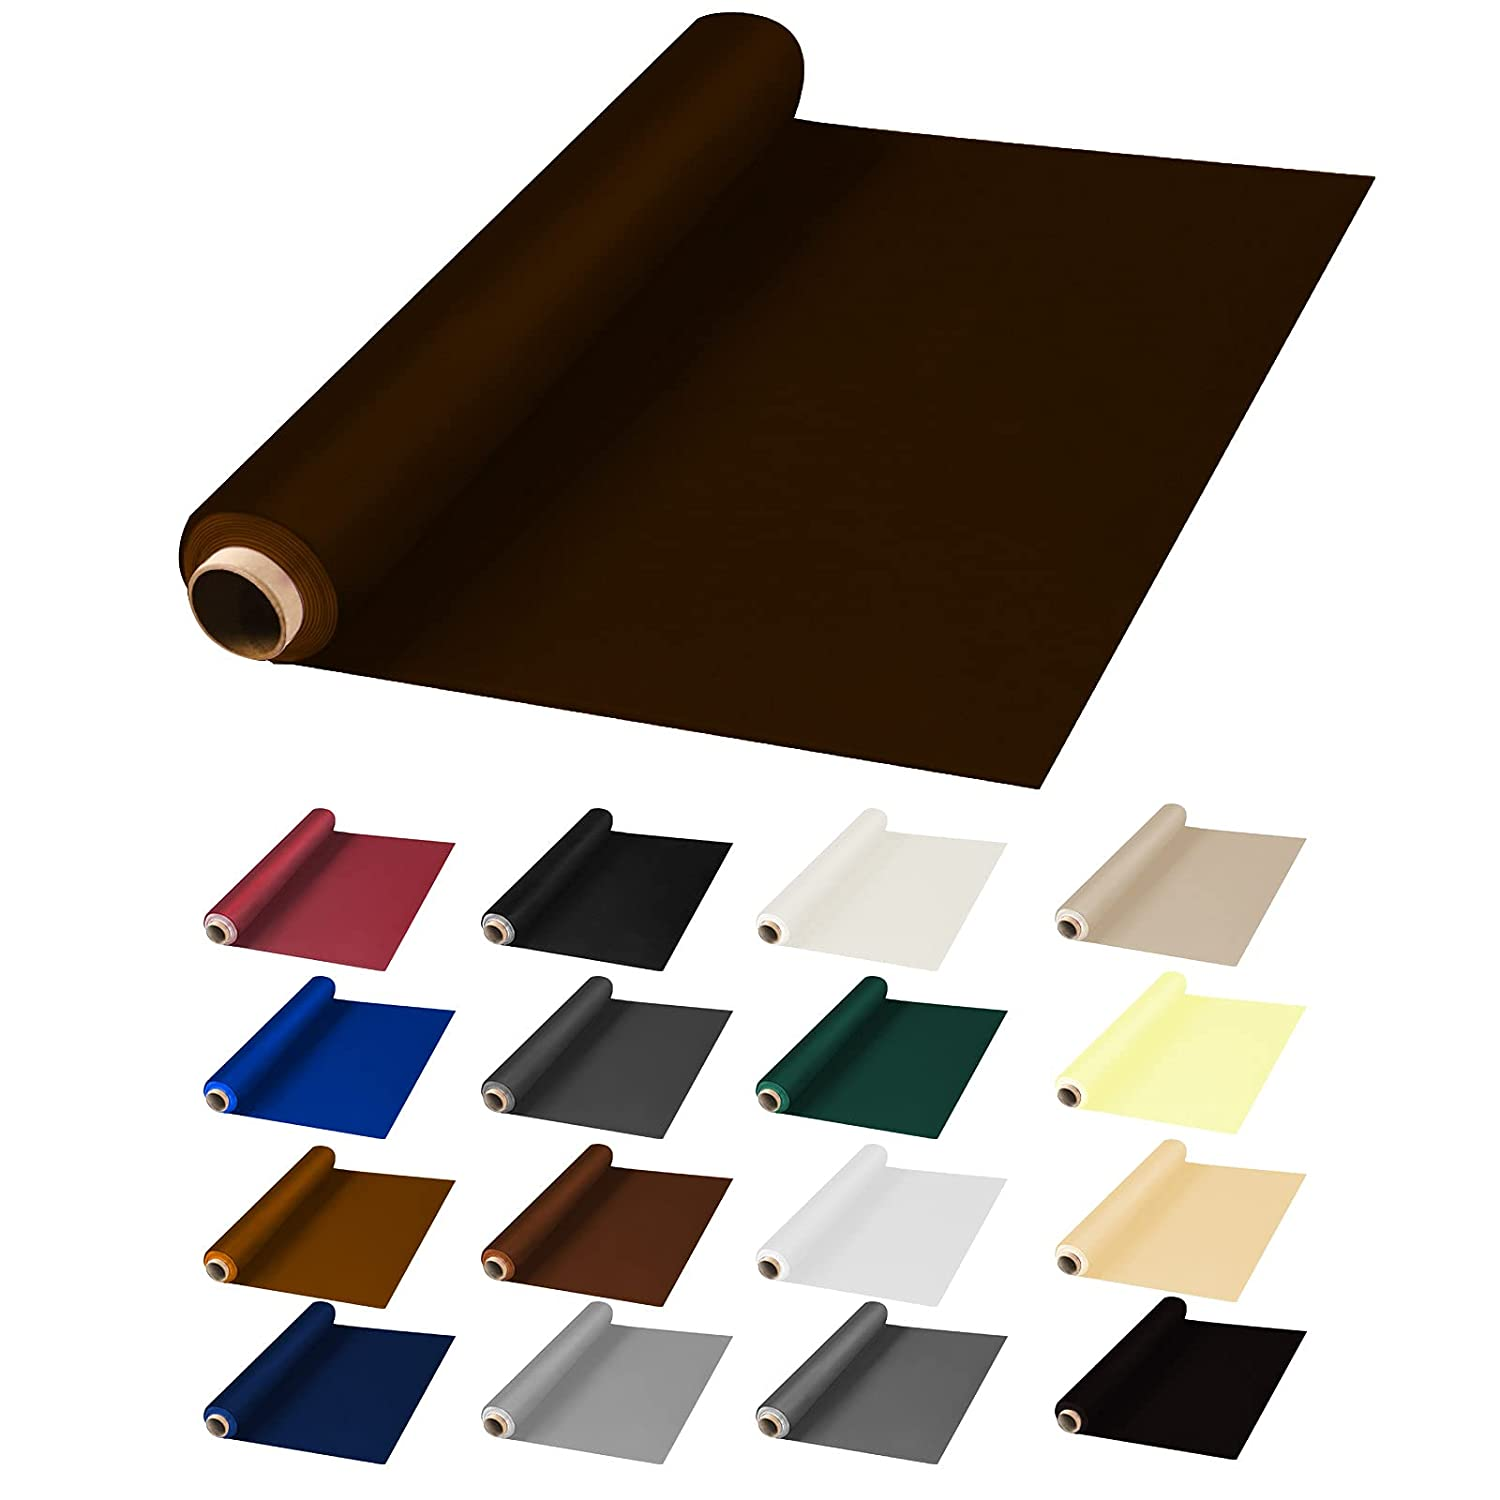 WIIBROOK Leather Repair Patch Challenge the lowest price New color Kit Self-Adhesive